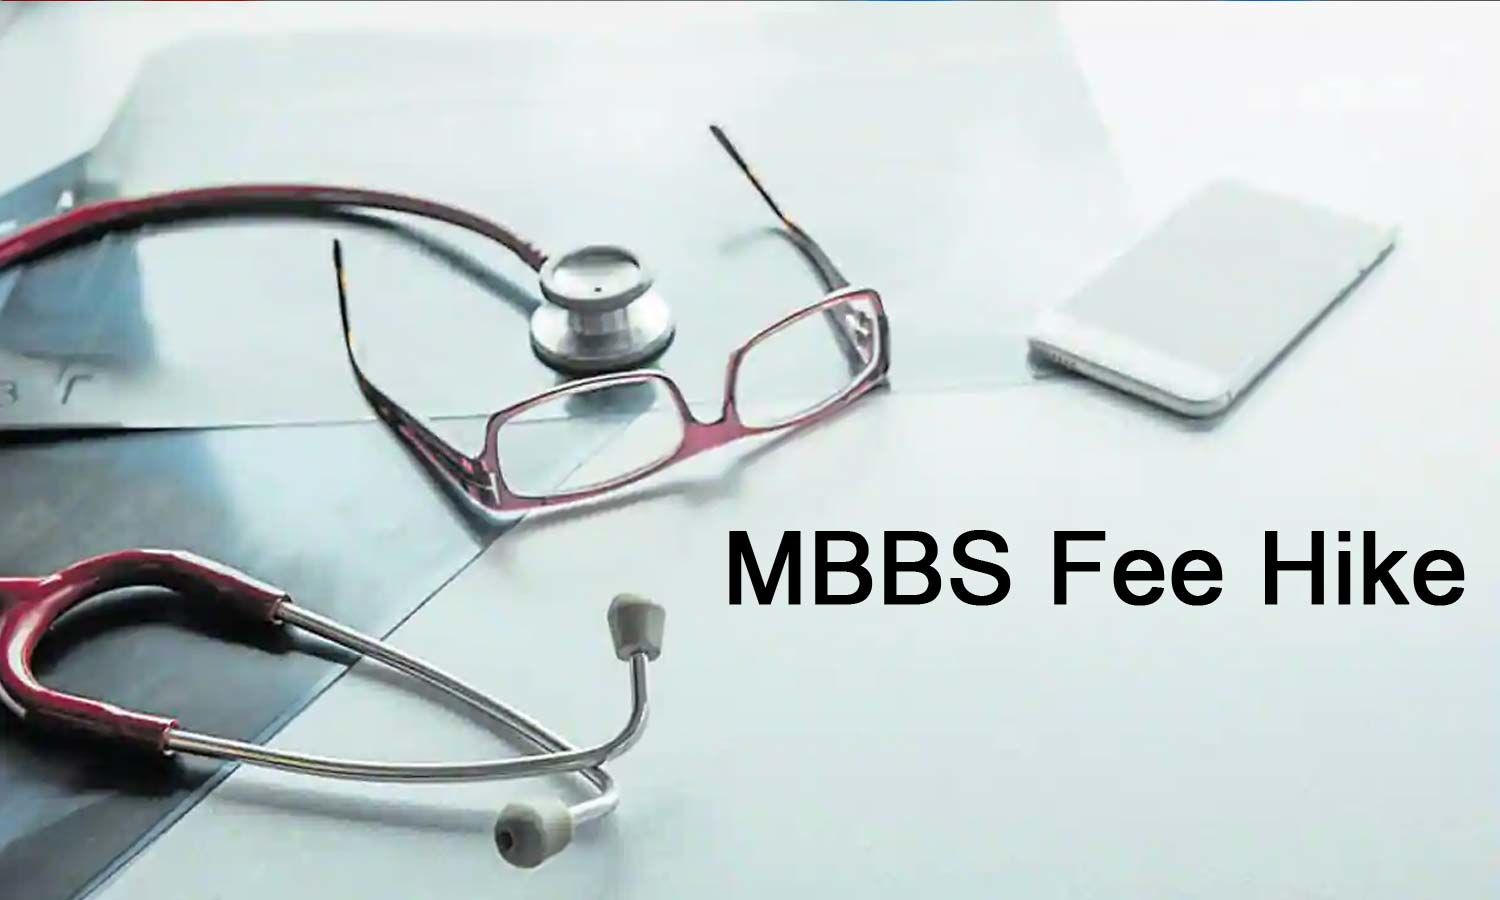 Medicos Vs Govt in Punjab over MBBS fee hike